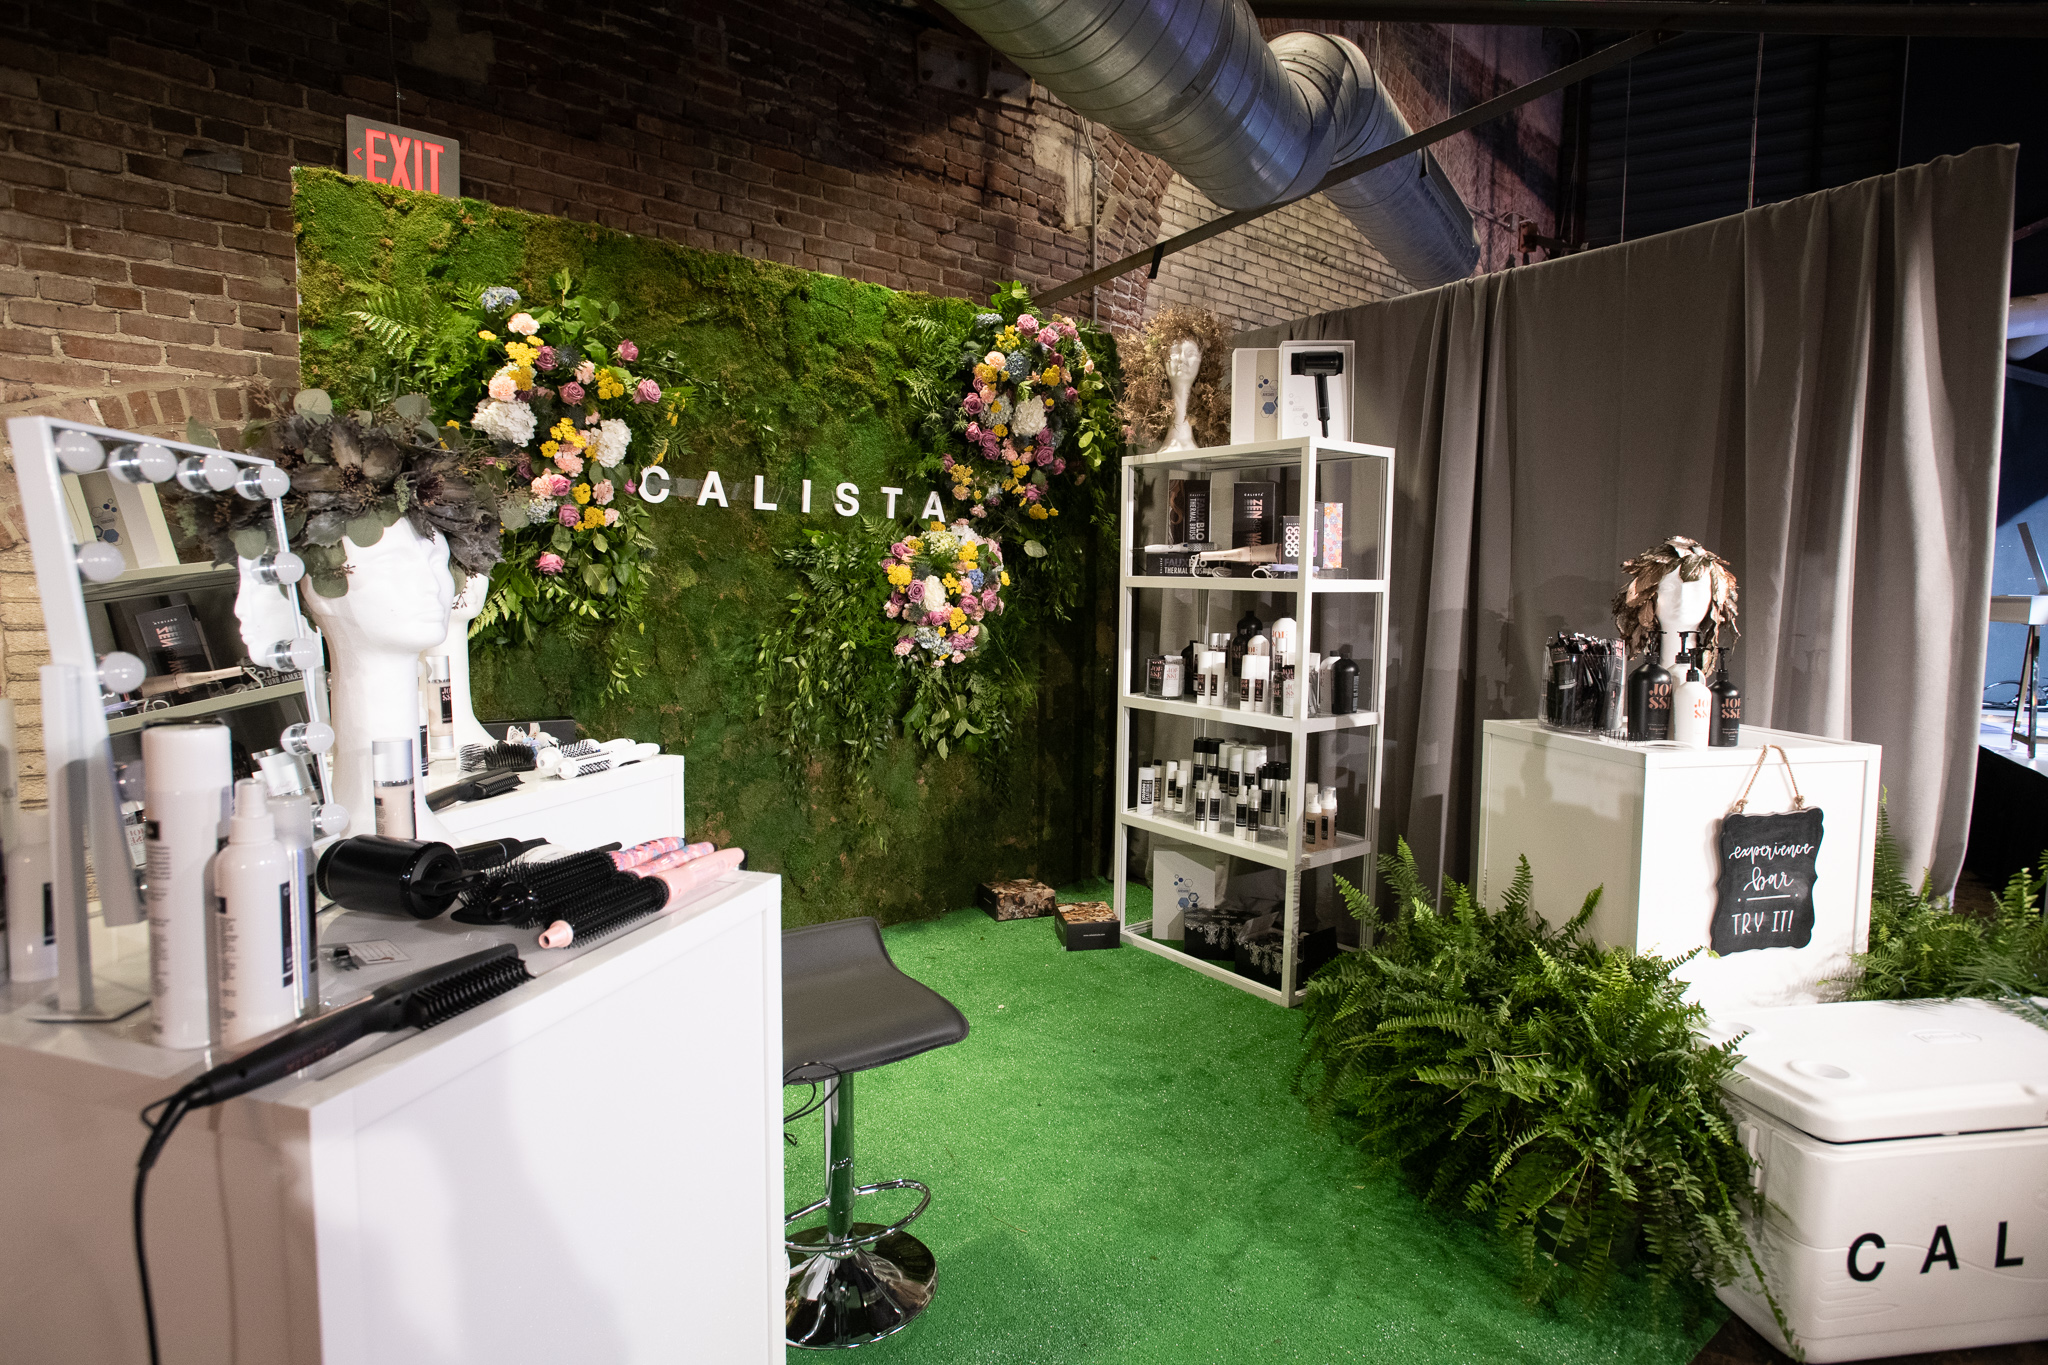 QVC Beauty Bash at The Fillmore, Booth Production for Calista. Photo: @DRUF